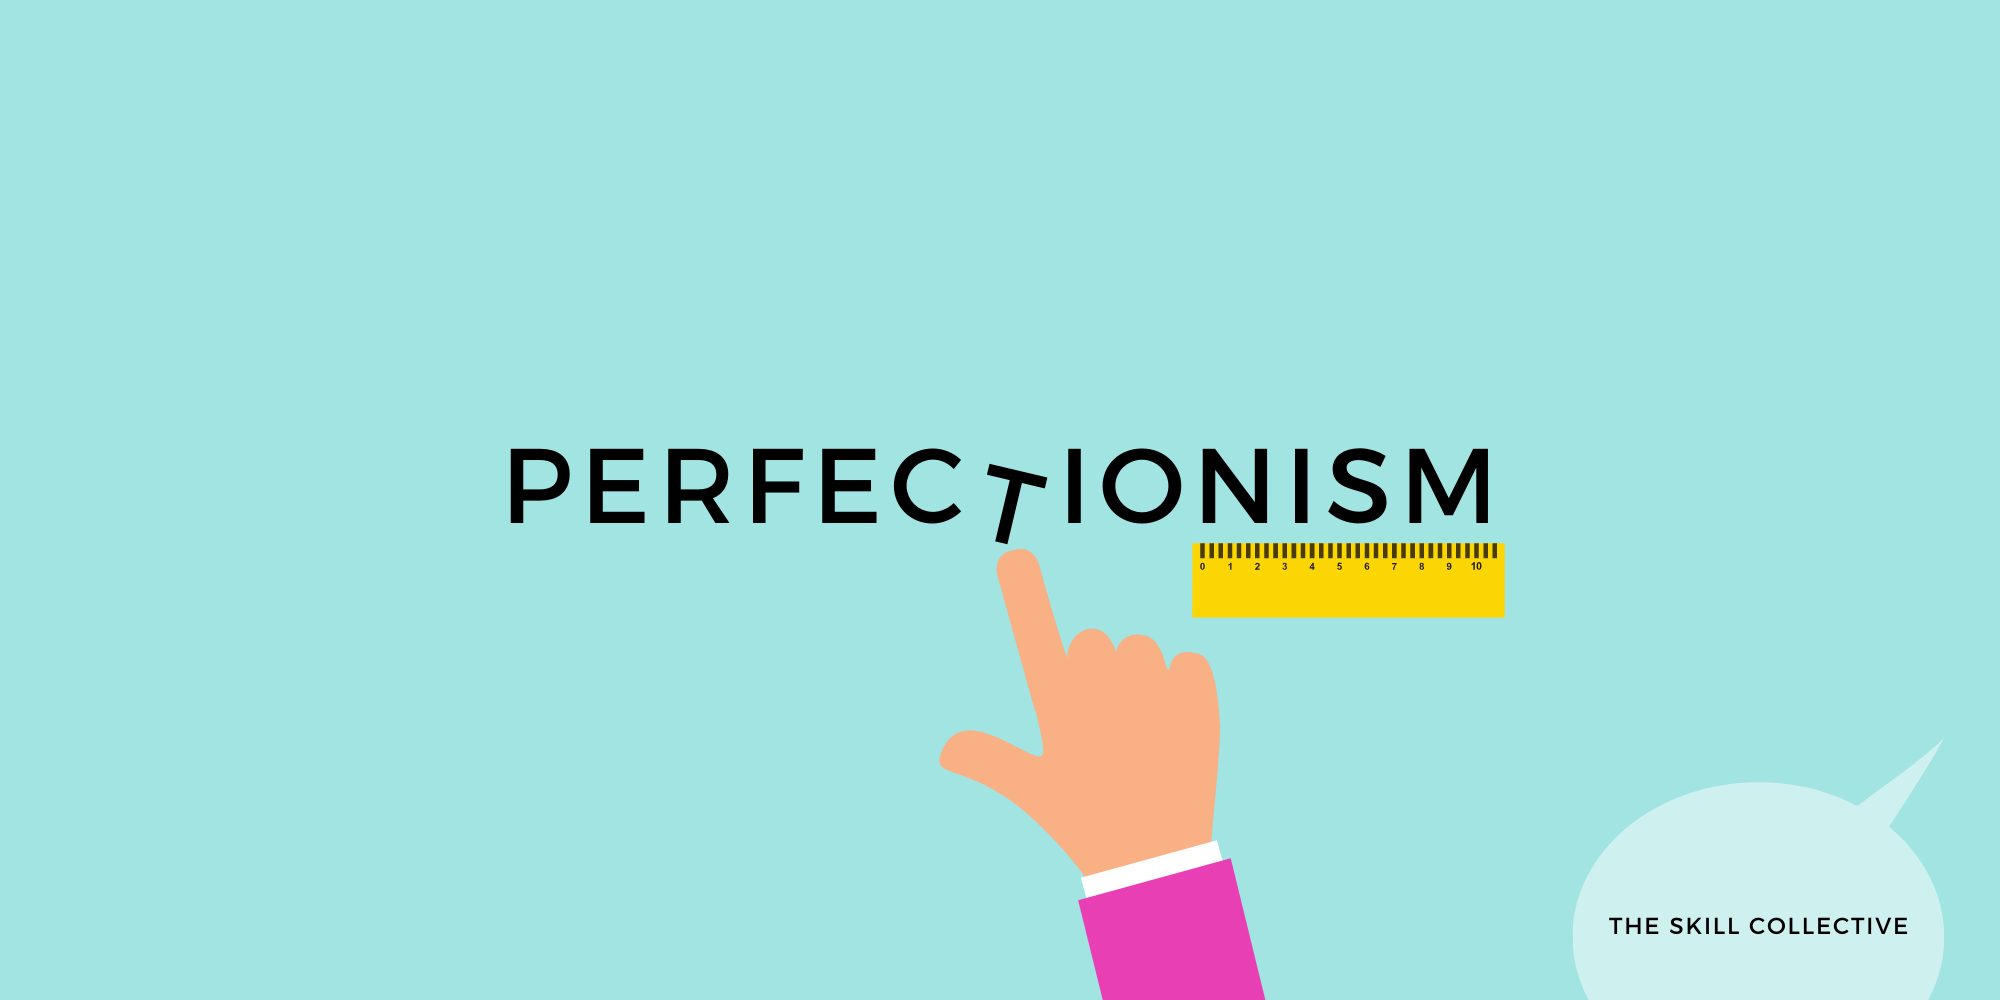 The Skill Collective- PERFECTIONISM | Wellbeing, mental health, and performance | Clinical psychologists in Subiaco Perth